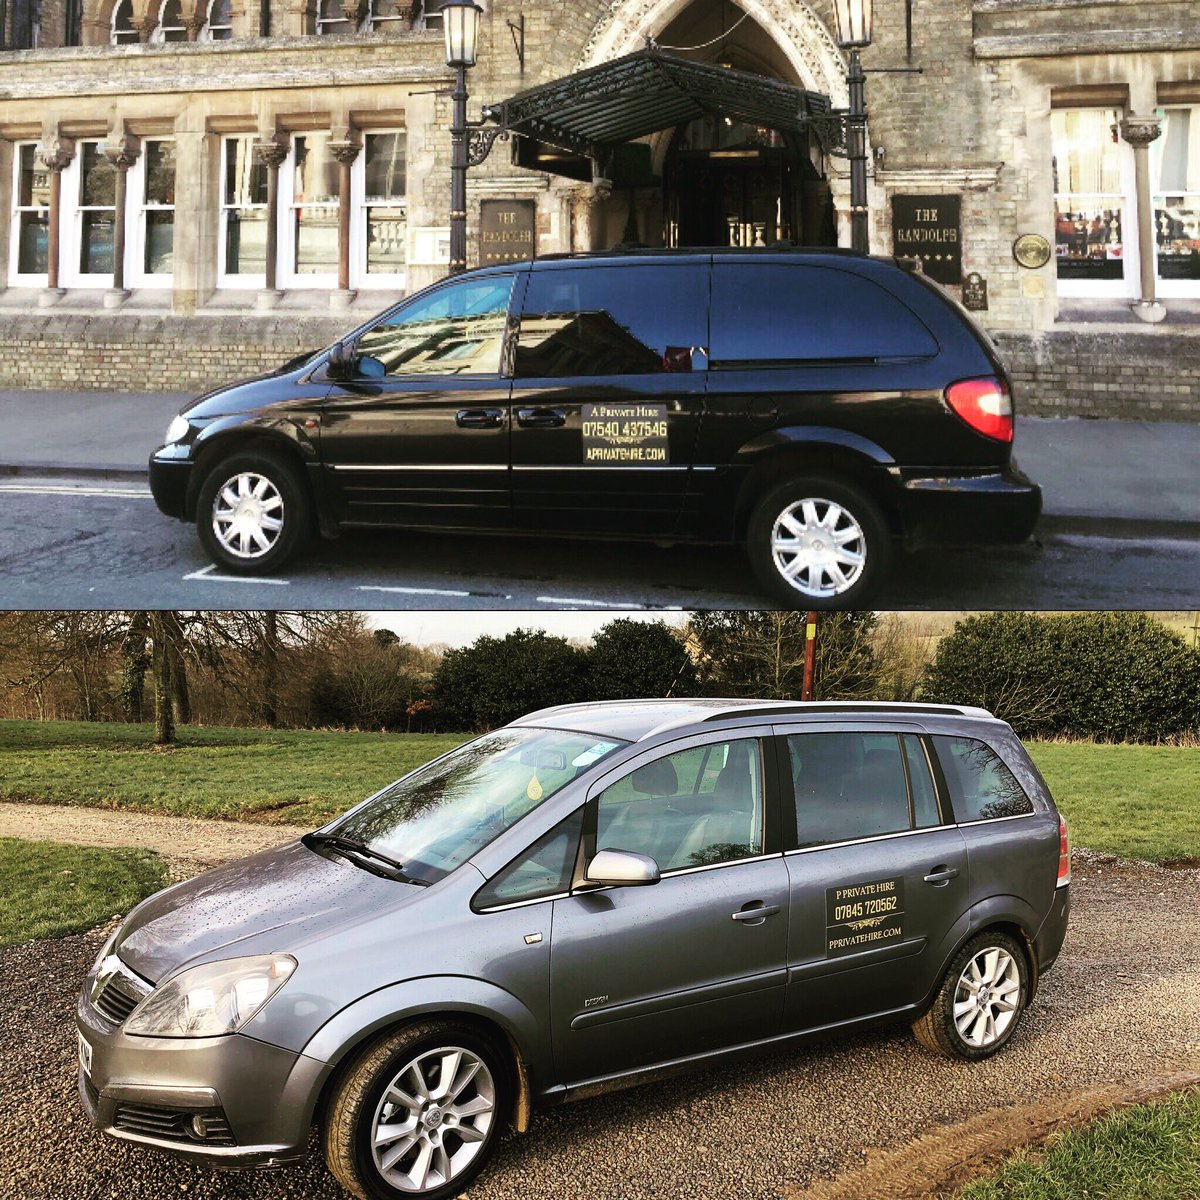 6 Passenger Vehicles >> A Private Hire On Twitter We Have 2 X 6 Passenger